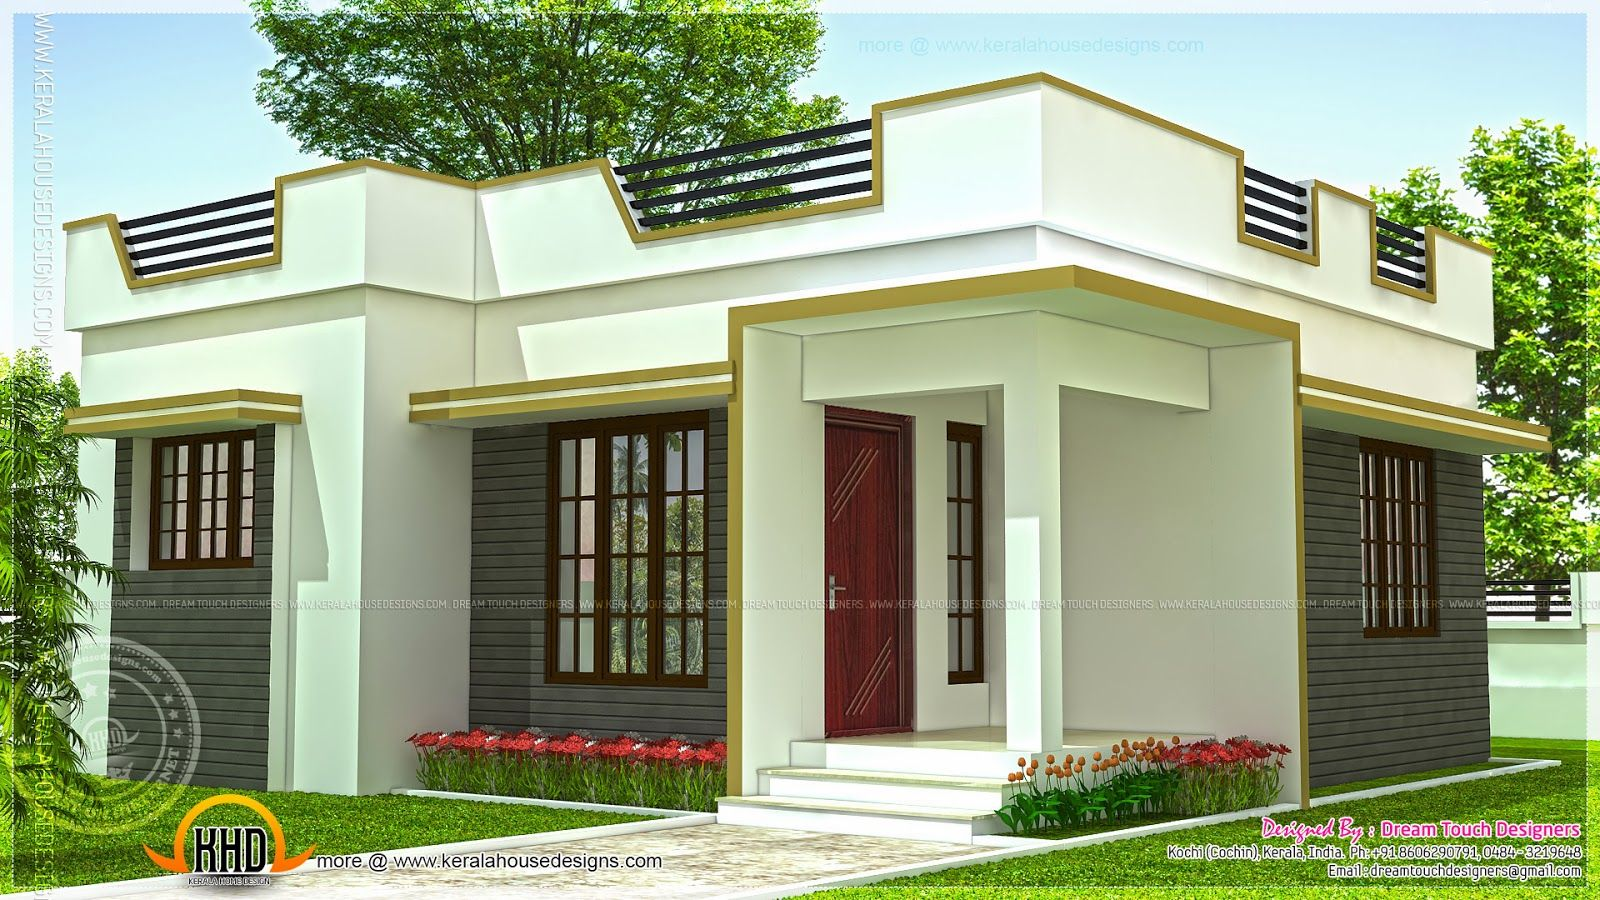 Small House Plans Kerala Model | House Style | Pinterest | Small House  Plans, Smallest House And Flat Roof House